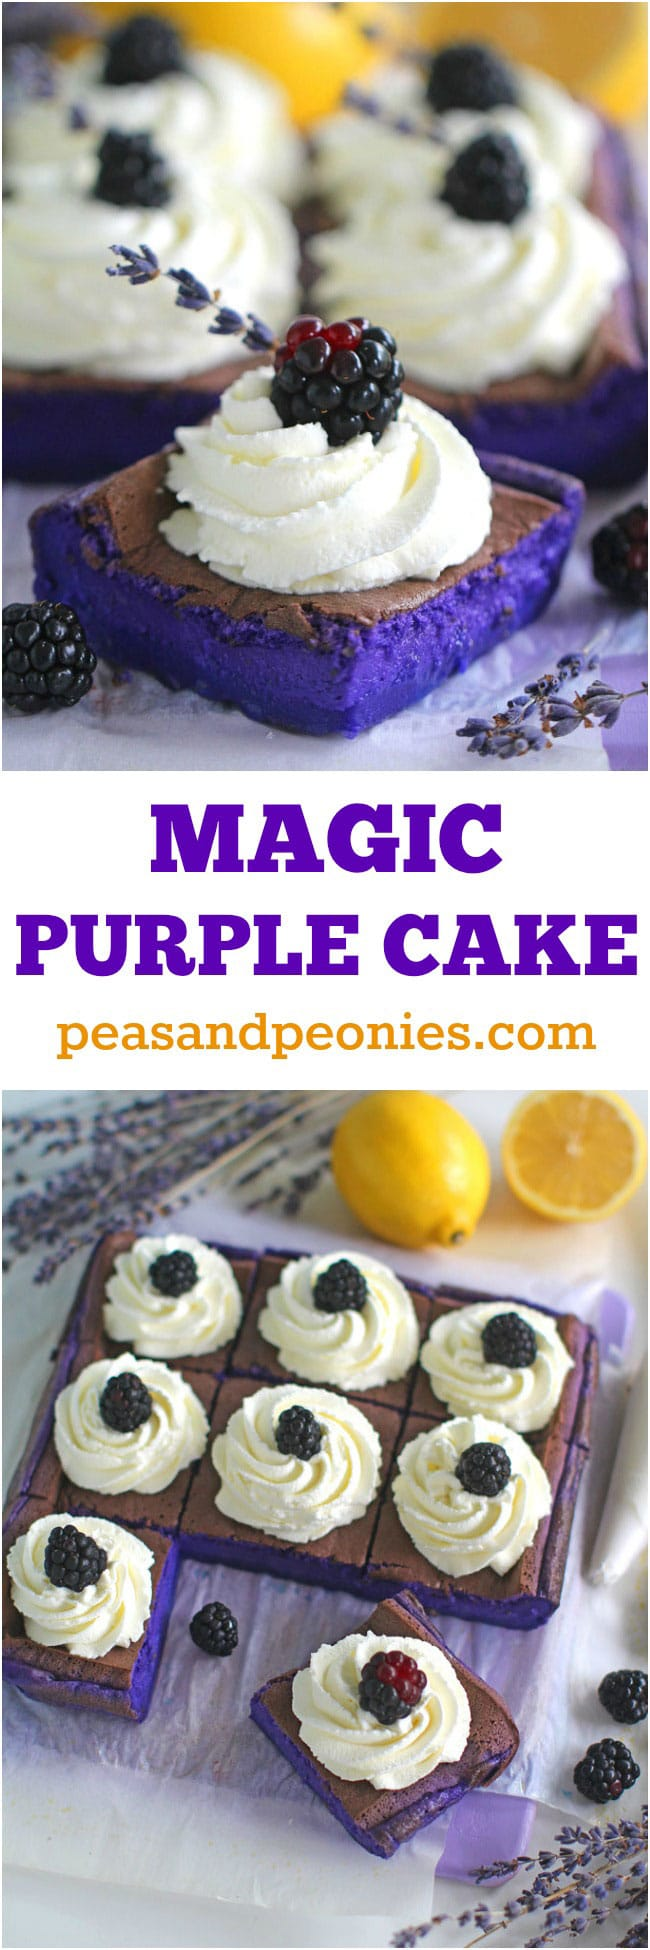 Magic Purple Cake with lemon and lavender flavor is incredibly easy to make, delicious and stunning. One batter, three magic purple layers!